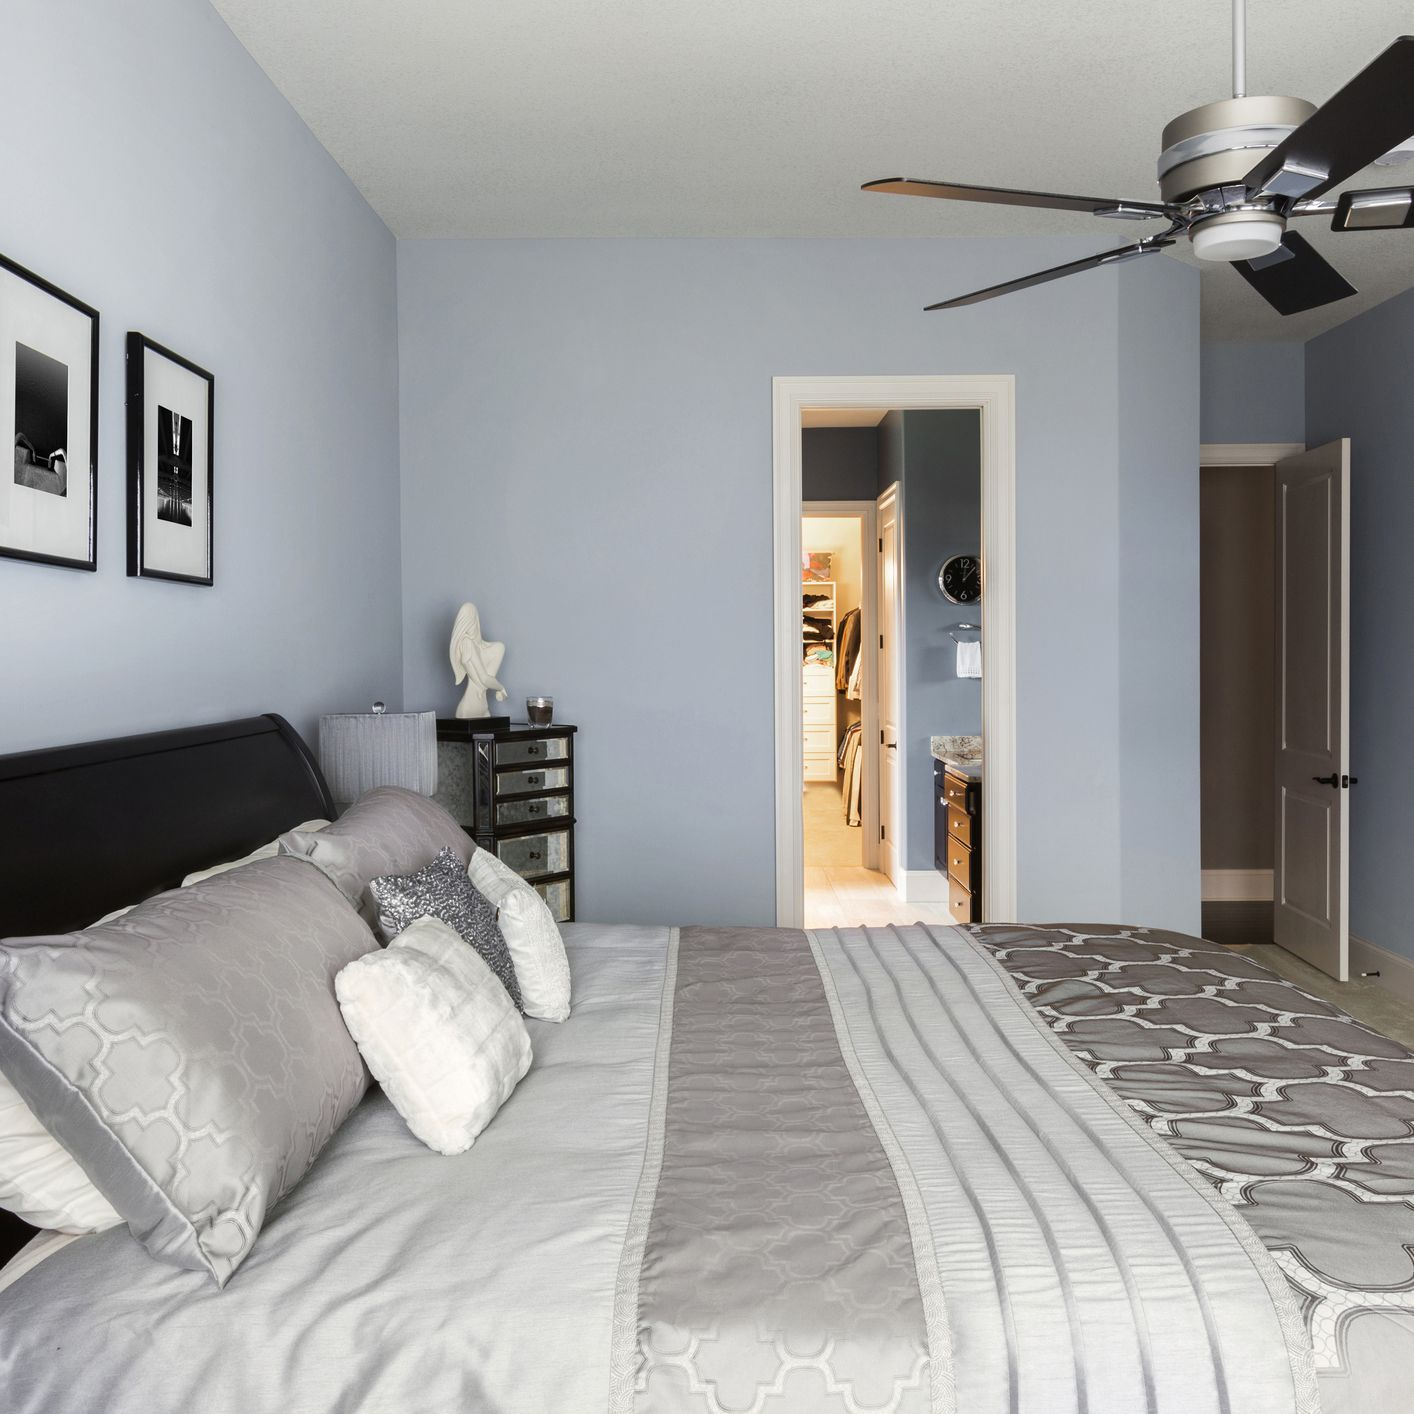 what size ceiling fan do i need for